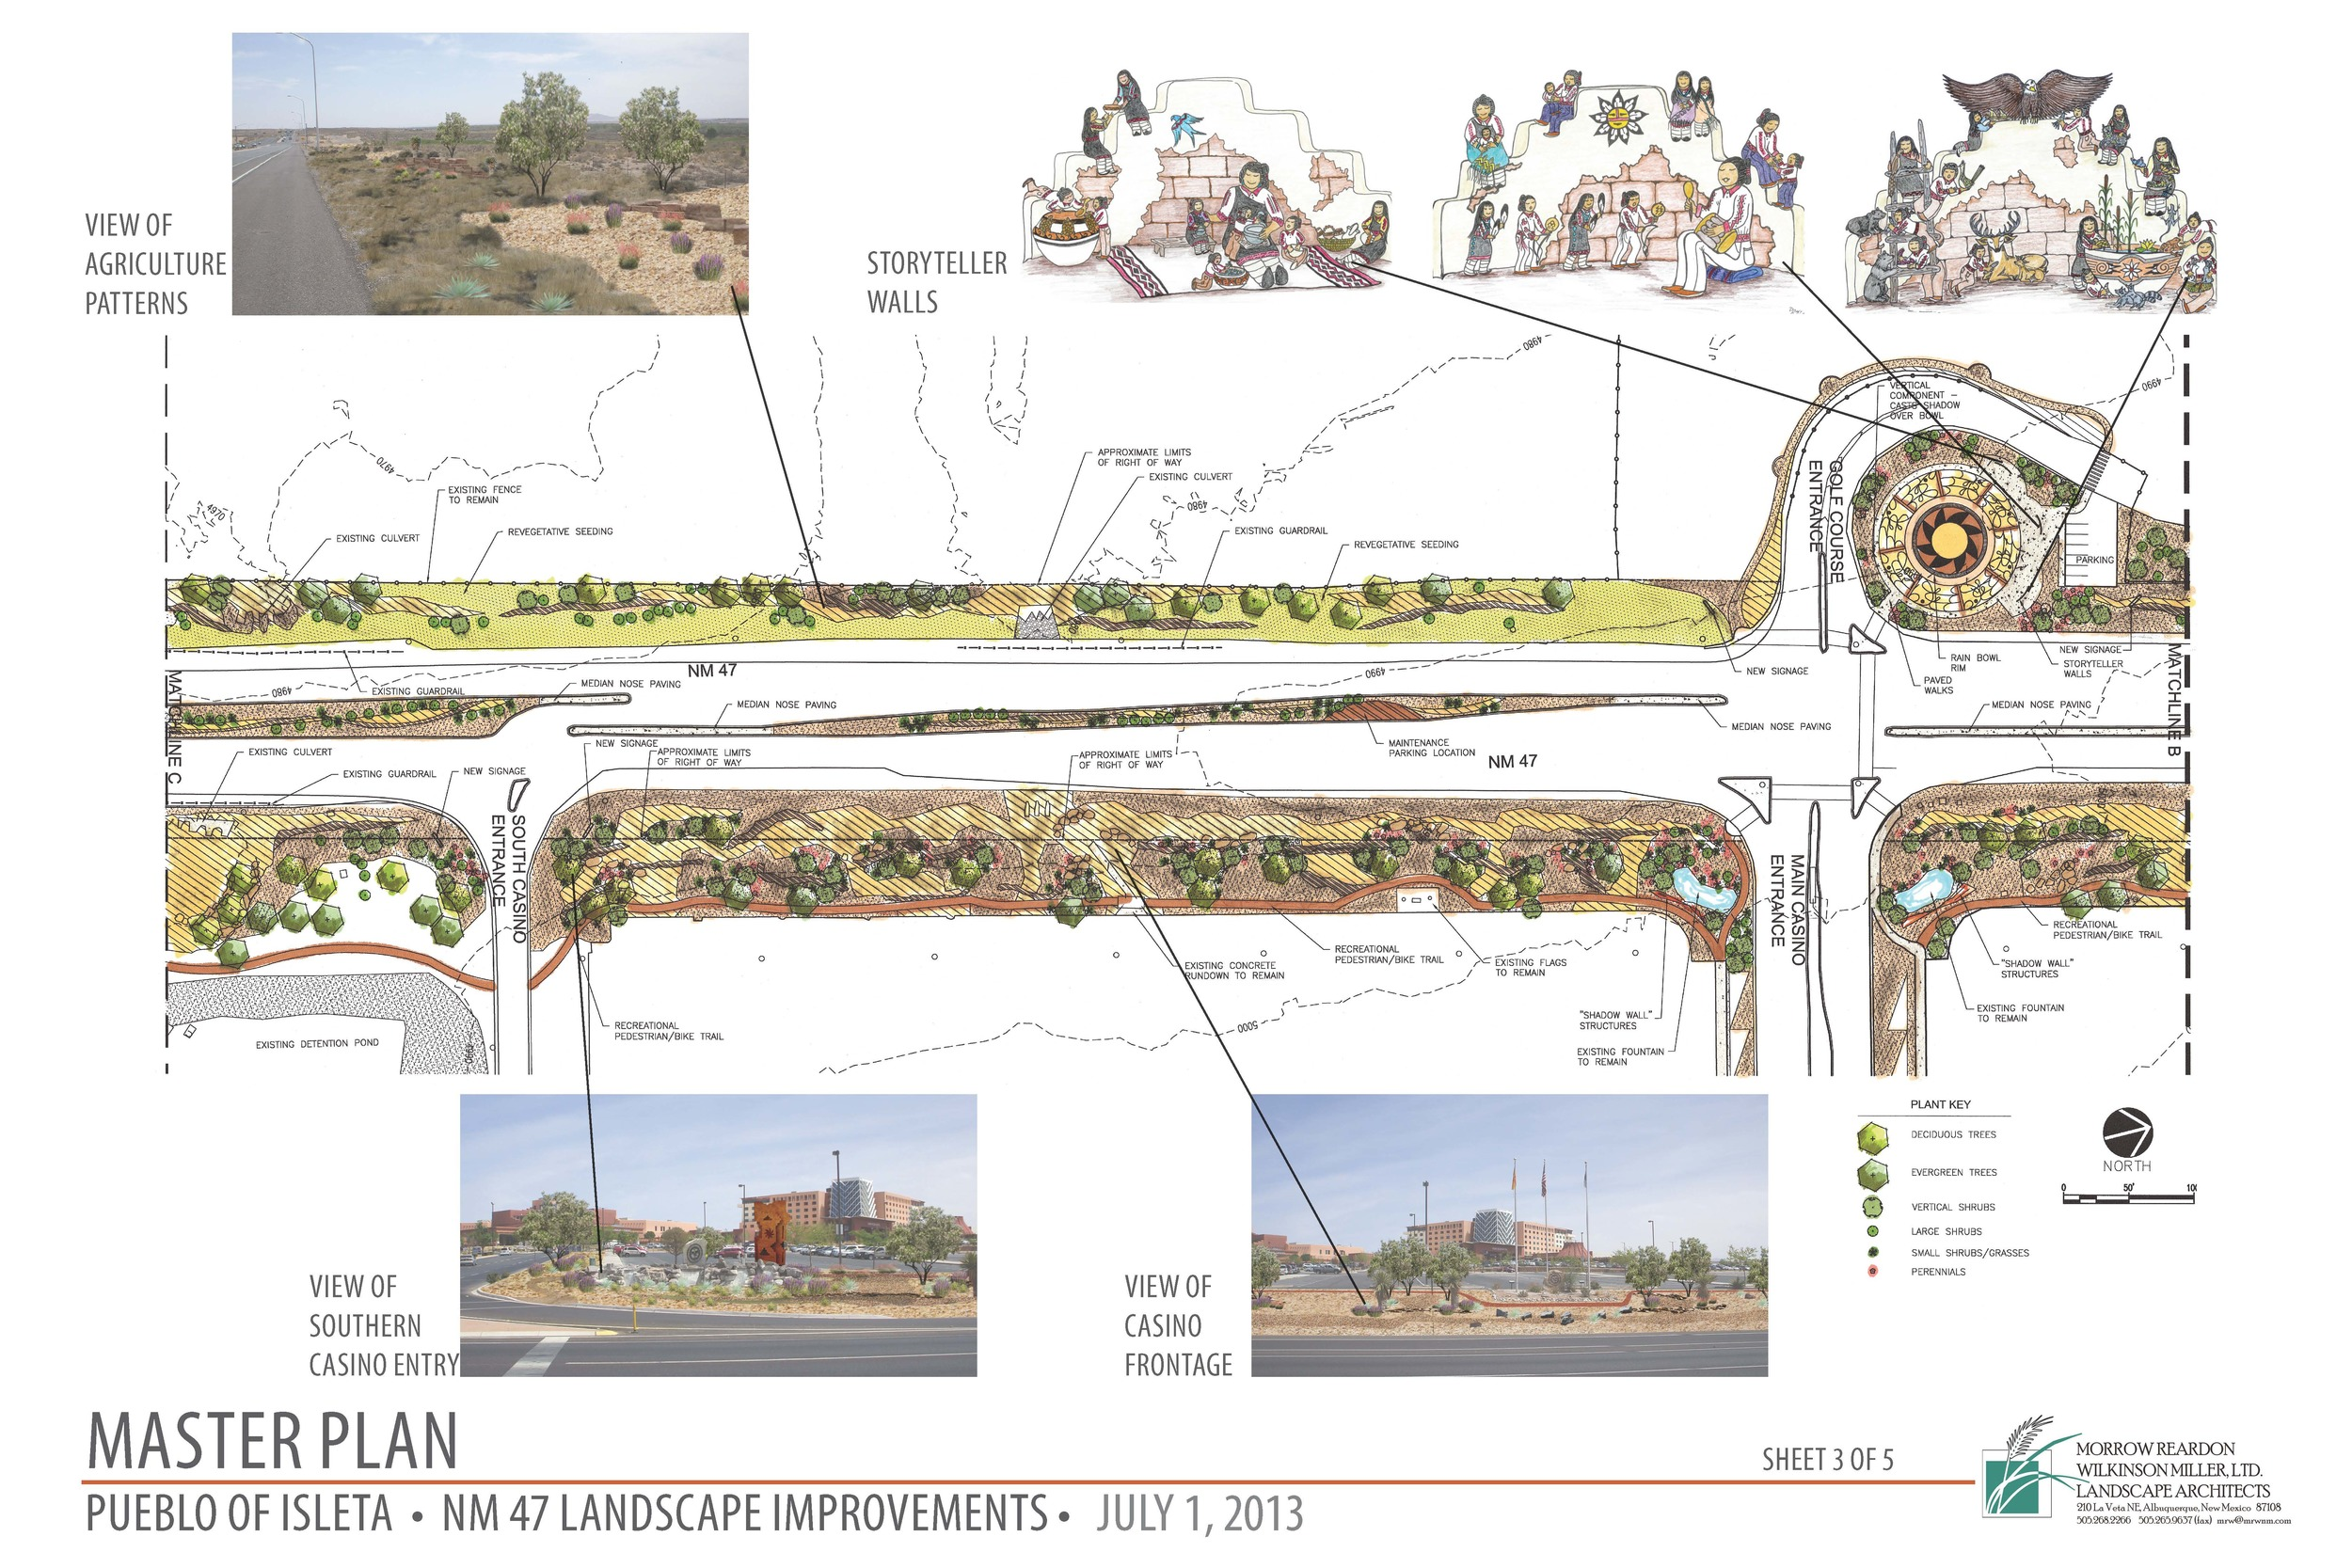 Artwork and plantings at Isleta Pueblo highway streetscape improvements